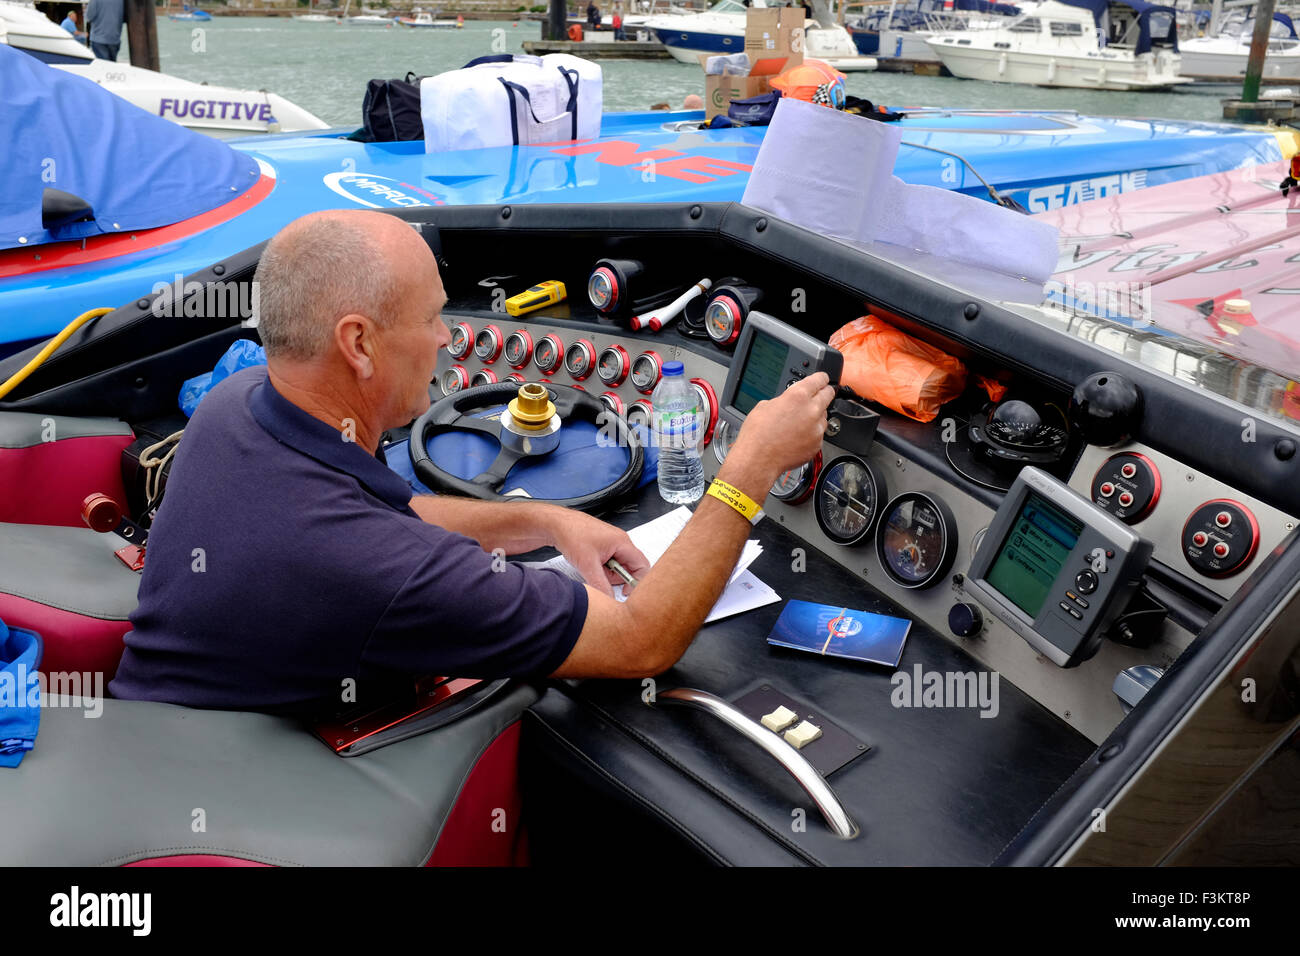 checking navigation systems The Yacht haven 2015, Cowes Classic, Power Boat Race, Cowes, Isle of Wight, England, - Stock Image